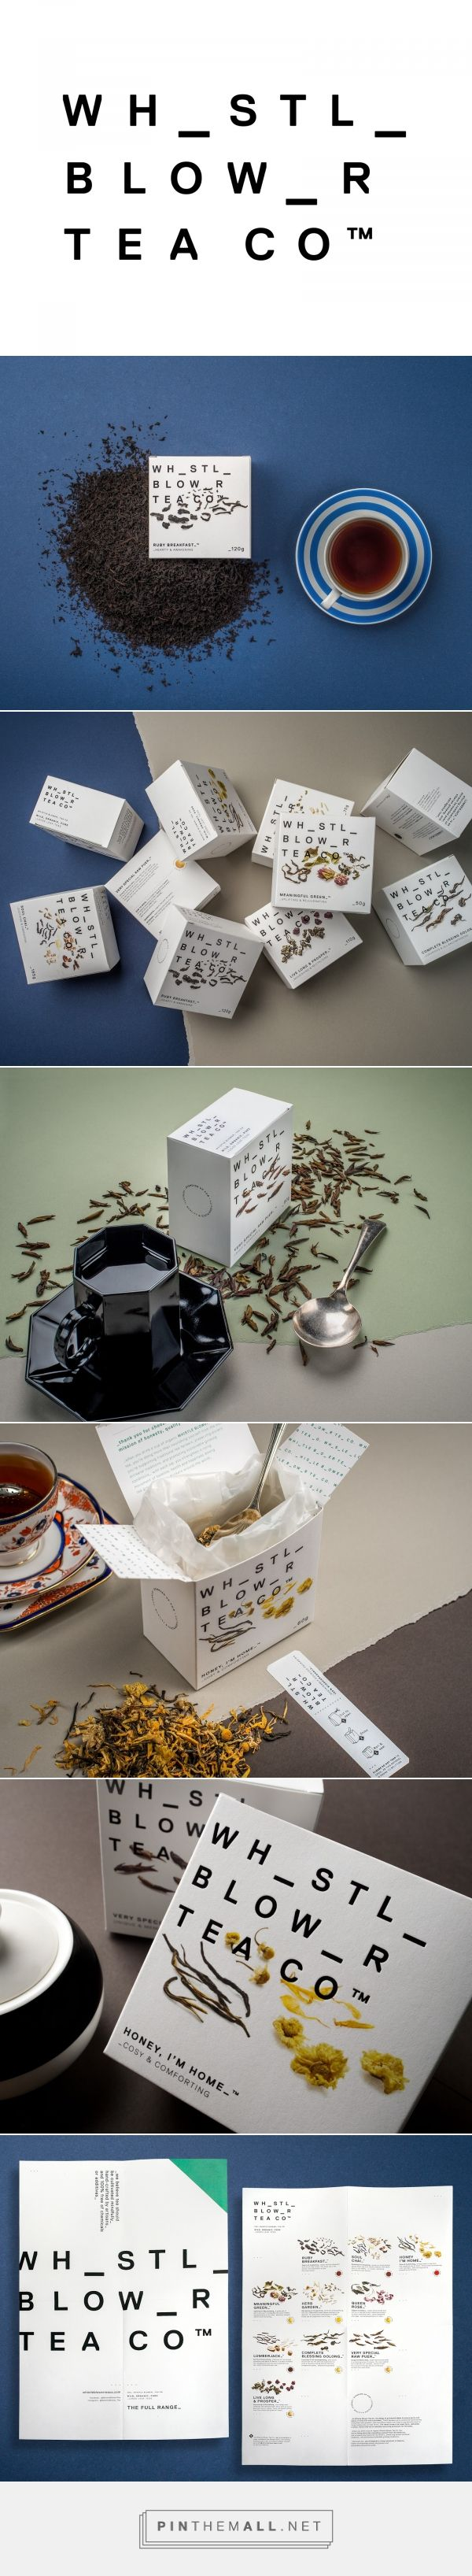 Whistle Blower Tea Co. packaging design by Black Squid Design - http://www.packagingoftheworld.com/2017/10/whistle-blower-tea-co.html